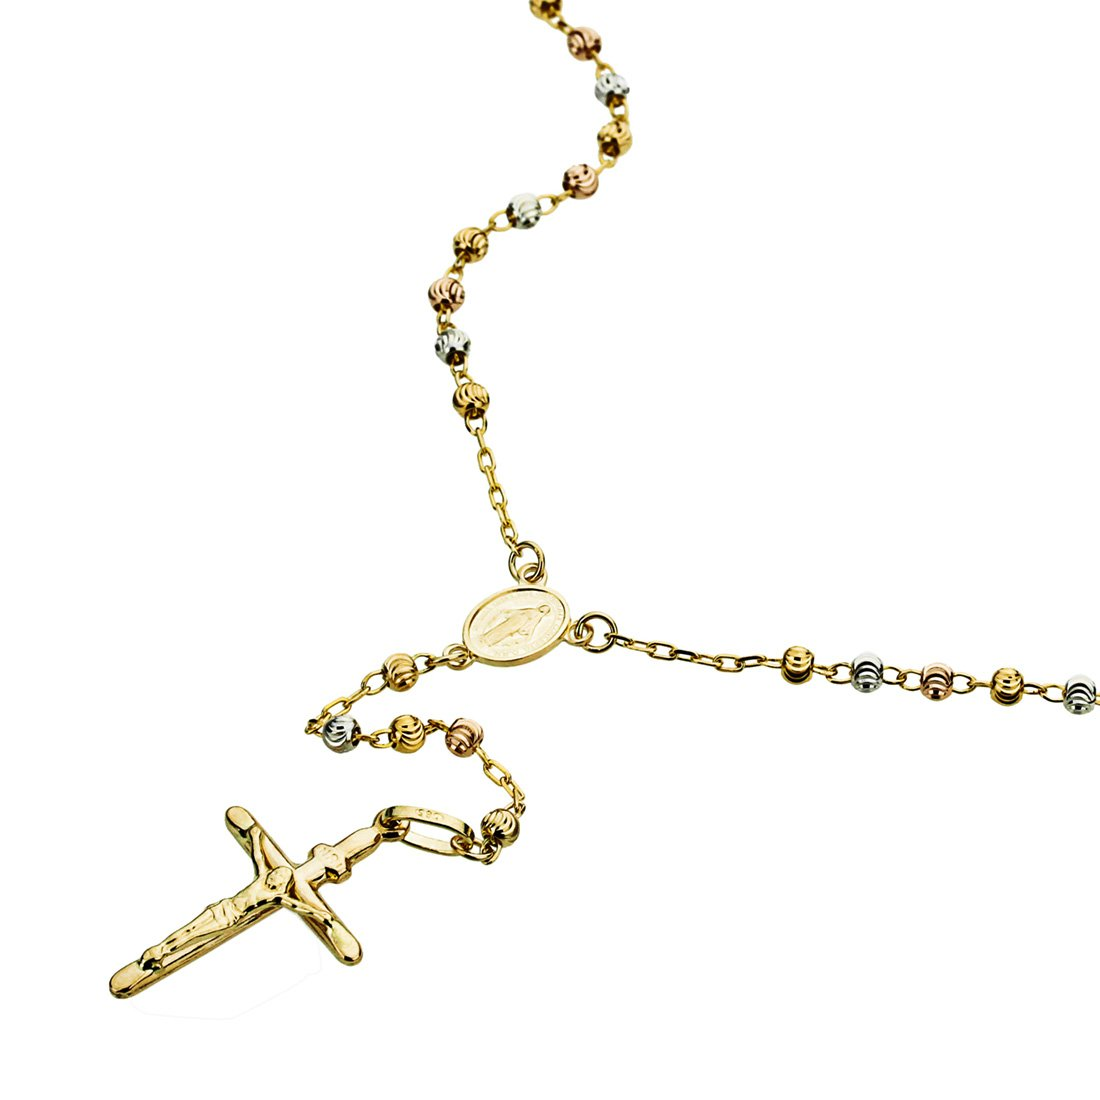 14K Tri-color Gold Rosary Necklace 3mm Moon Cut DC Bead Rosary Chain Necklace (16, 18, 20, 24 Inches), 20''